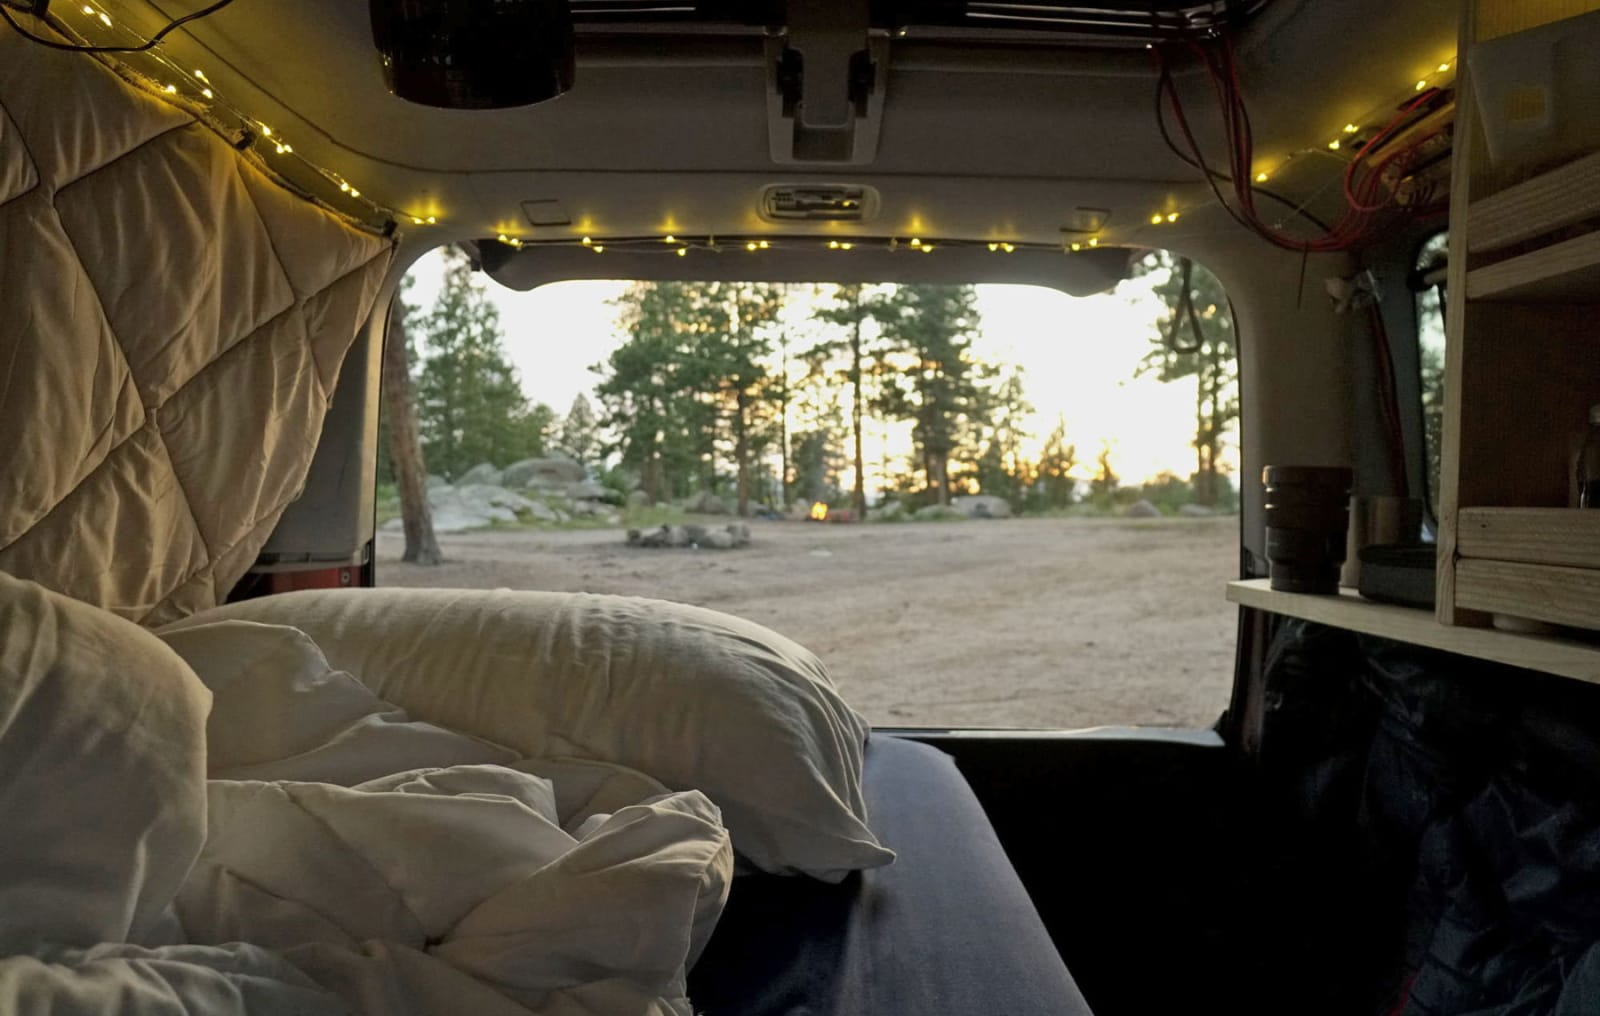 Summer boondocking gear: Car camping done right